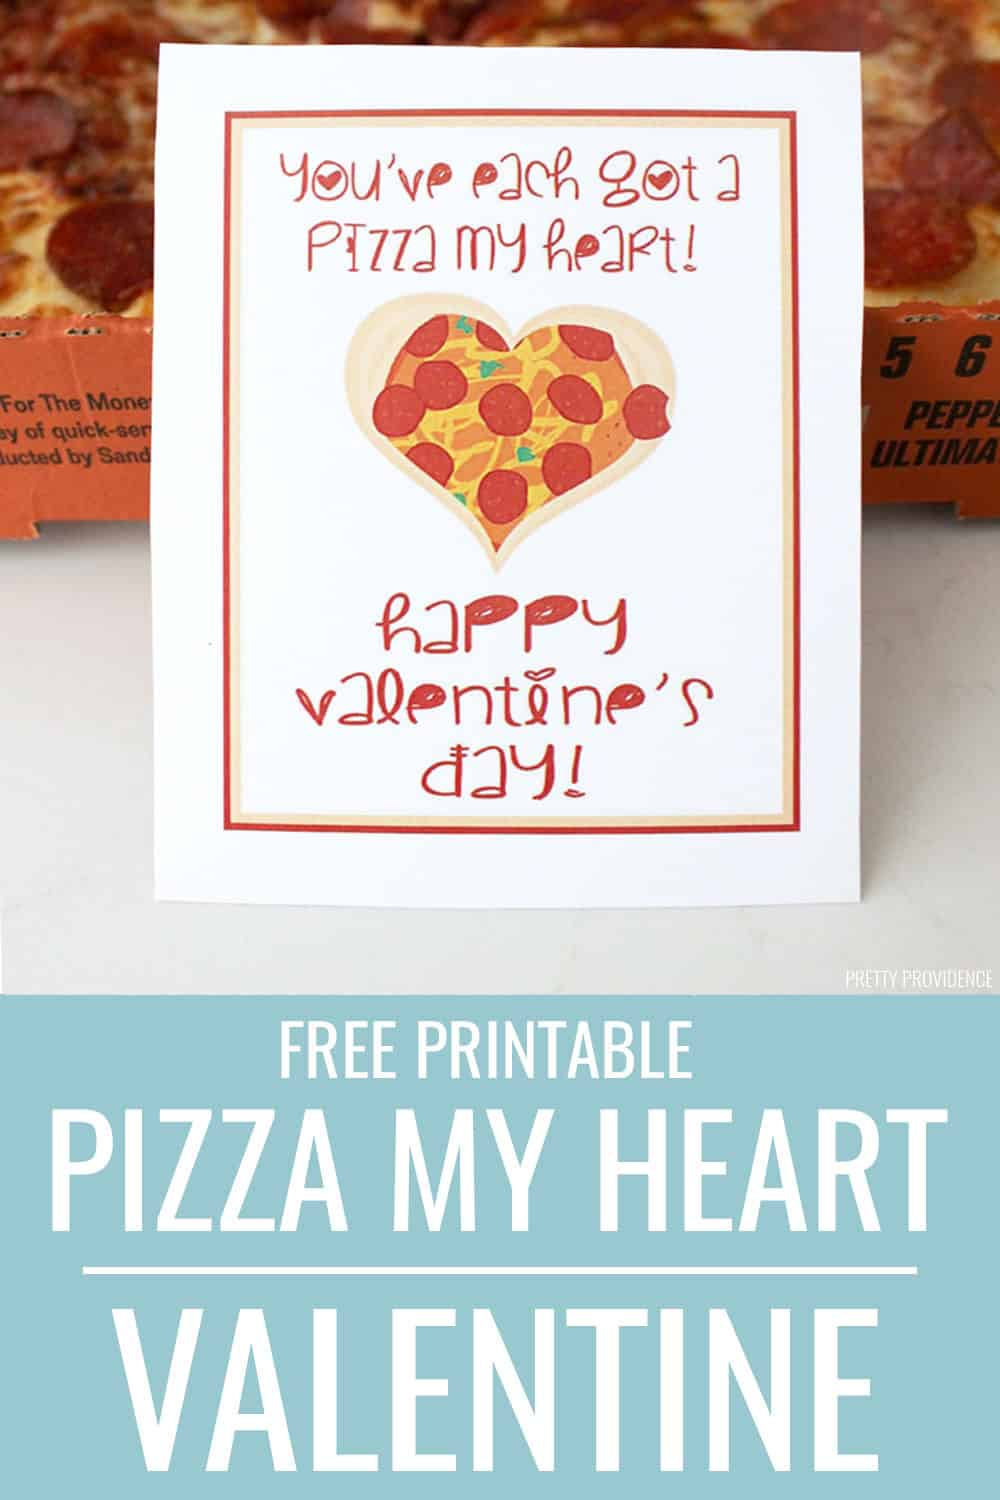 Pizza pun Valentine - free printable! Print this free  valentine card and give it with a pizza, who wouldn't love that! #valentinesday #valentines #freeprintablevalentines #freeprintable #pizzapuns #pizza #valentinespizza #heartpizza #valentinesdinner #valentineswithkids #familyvalentines